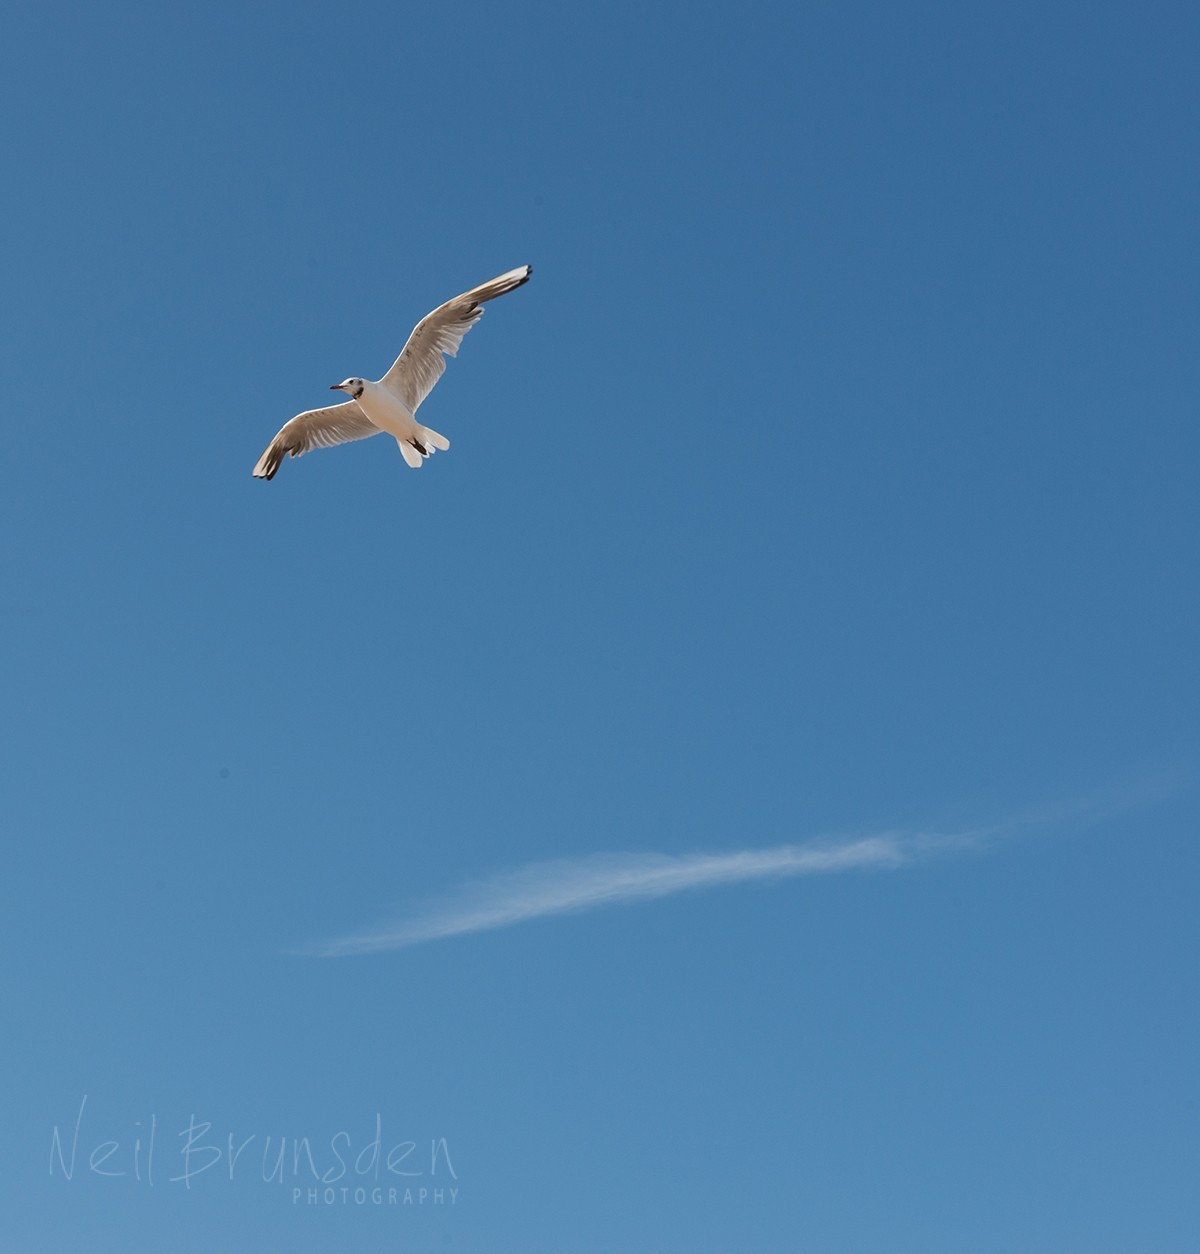 One Gull, One Cloud